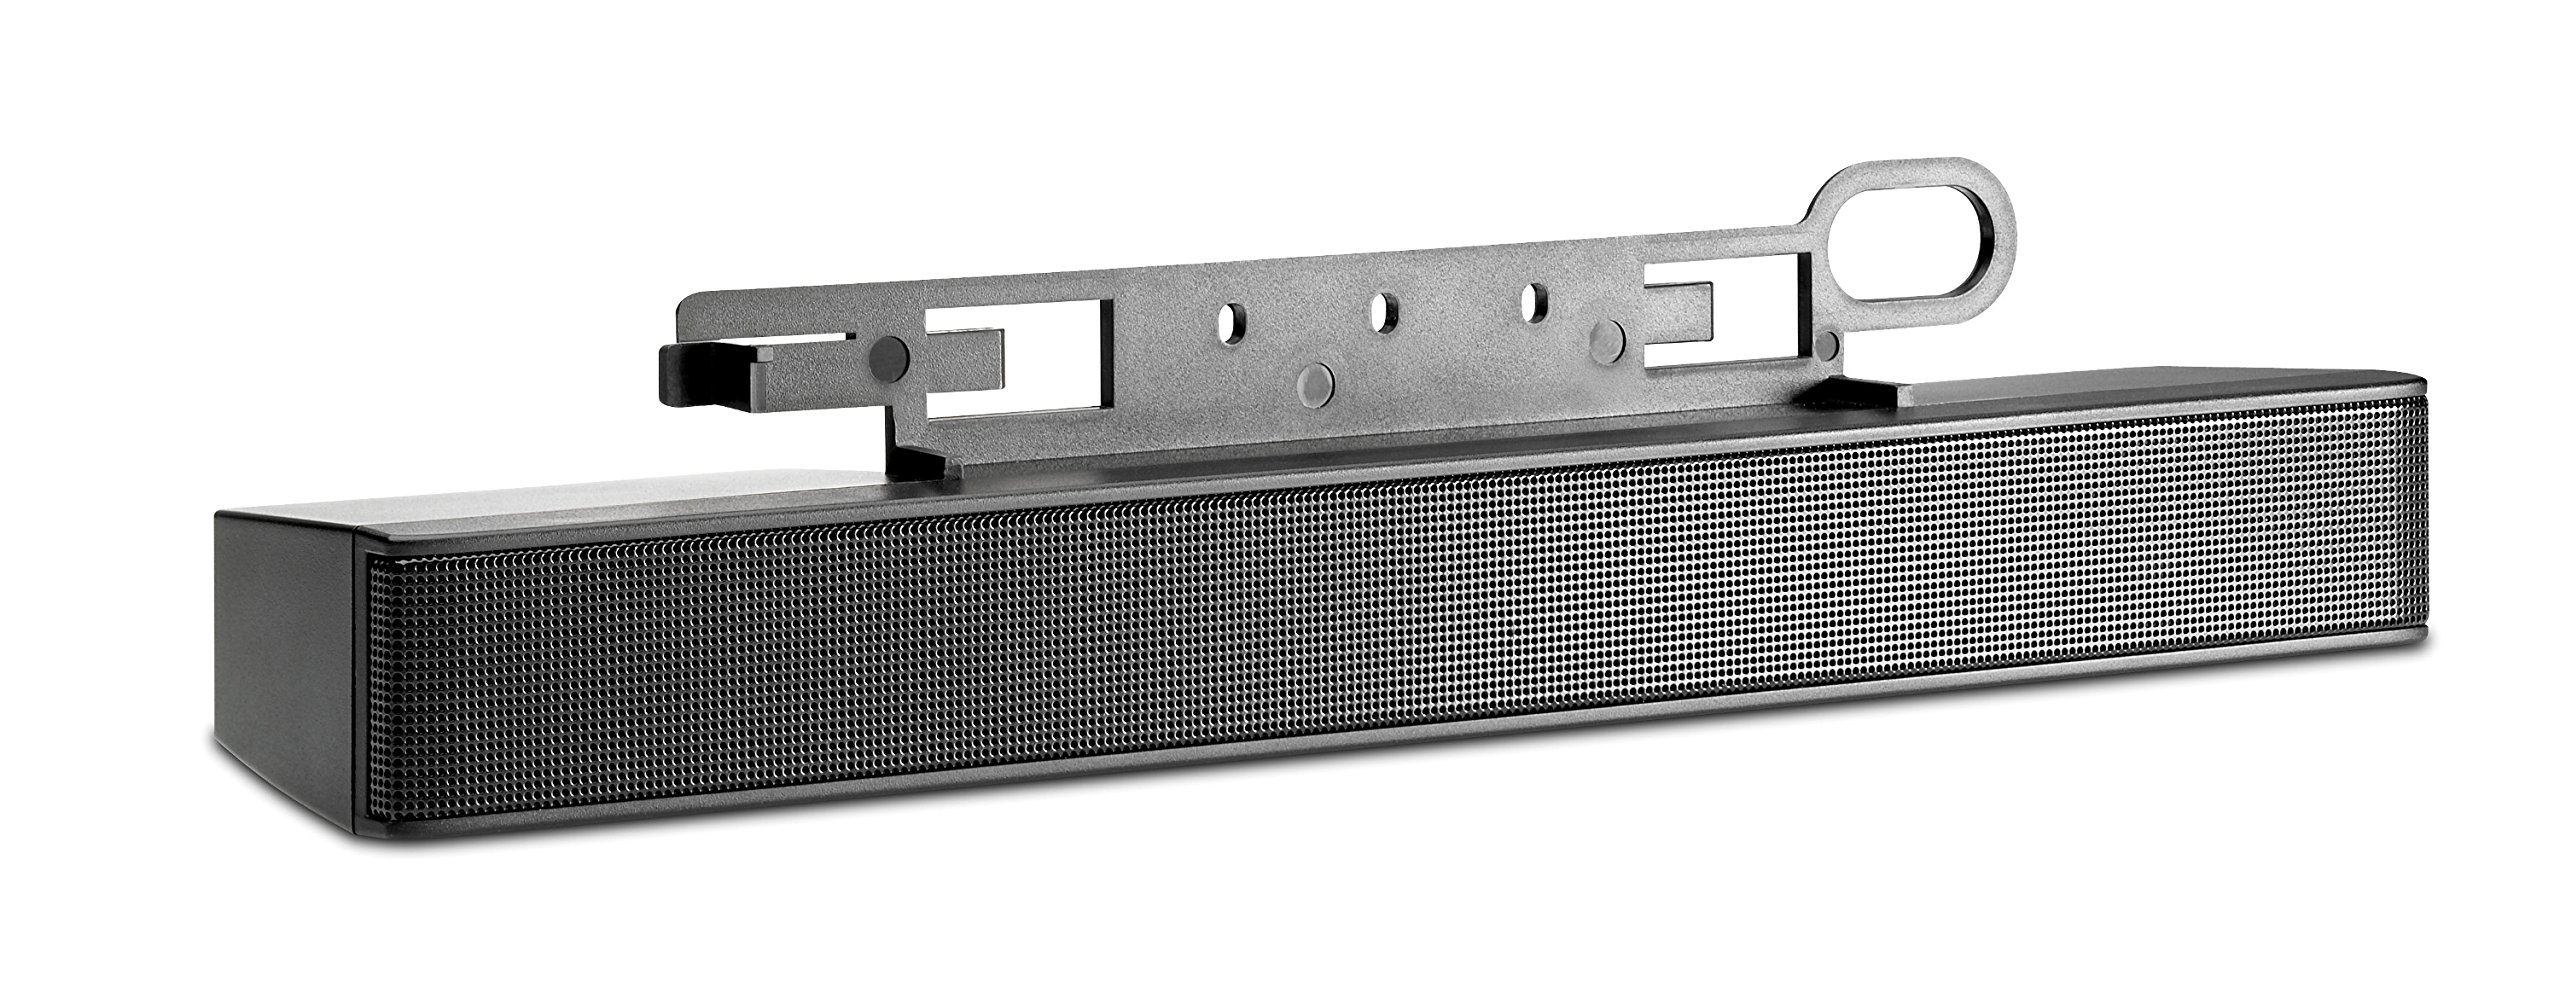 HP LCD Speaker Bar (black) by HP